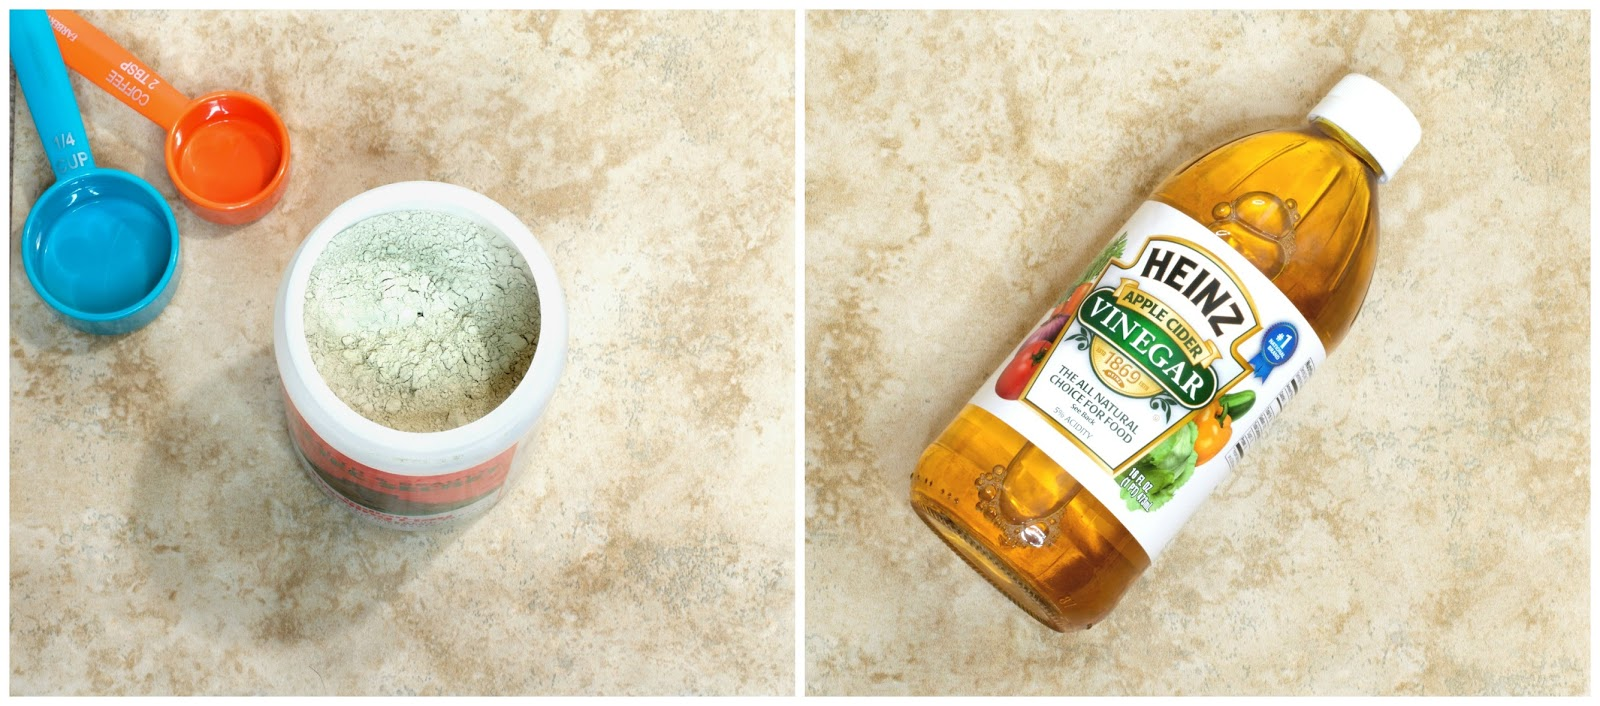 Aztec Healing Clay and Apple Cider Vinegar